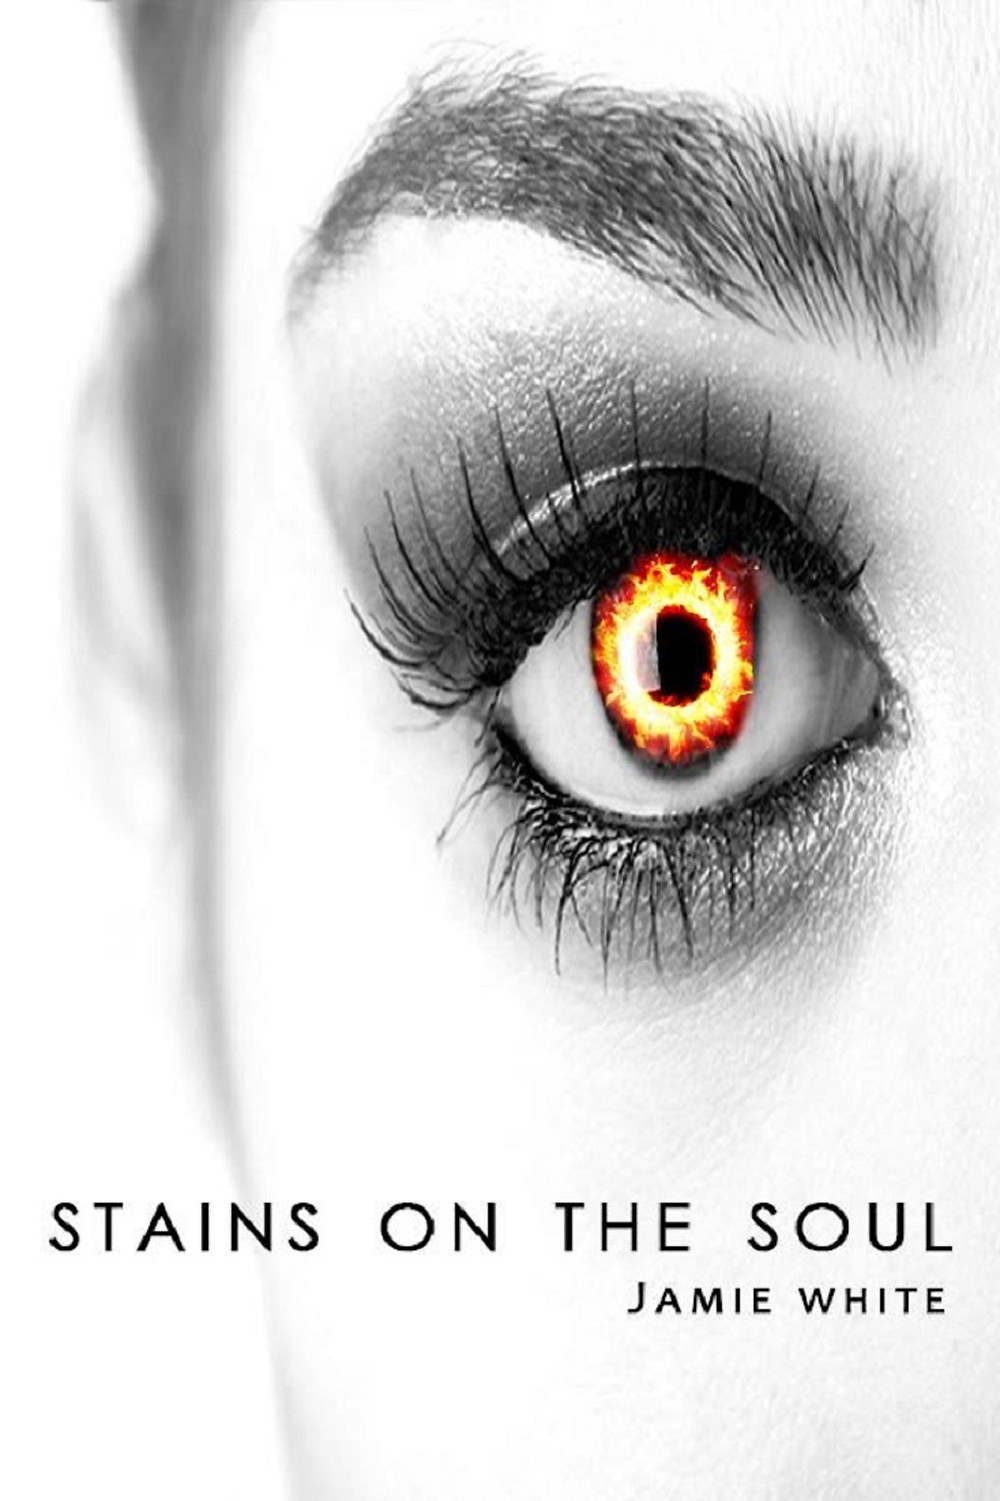 Stains On The Soul, Jamie White, author interview, freelance book editor, affordable book editing services, affordable book editor